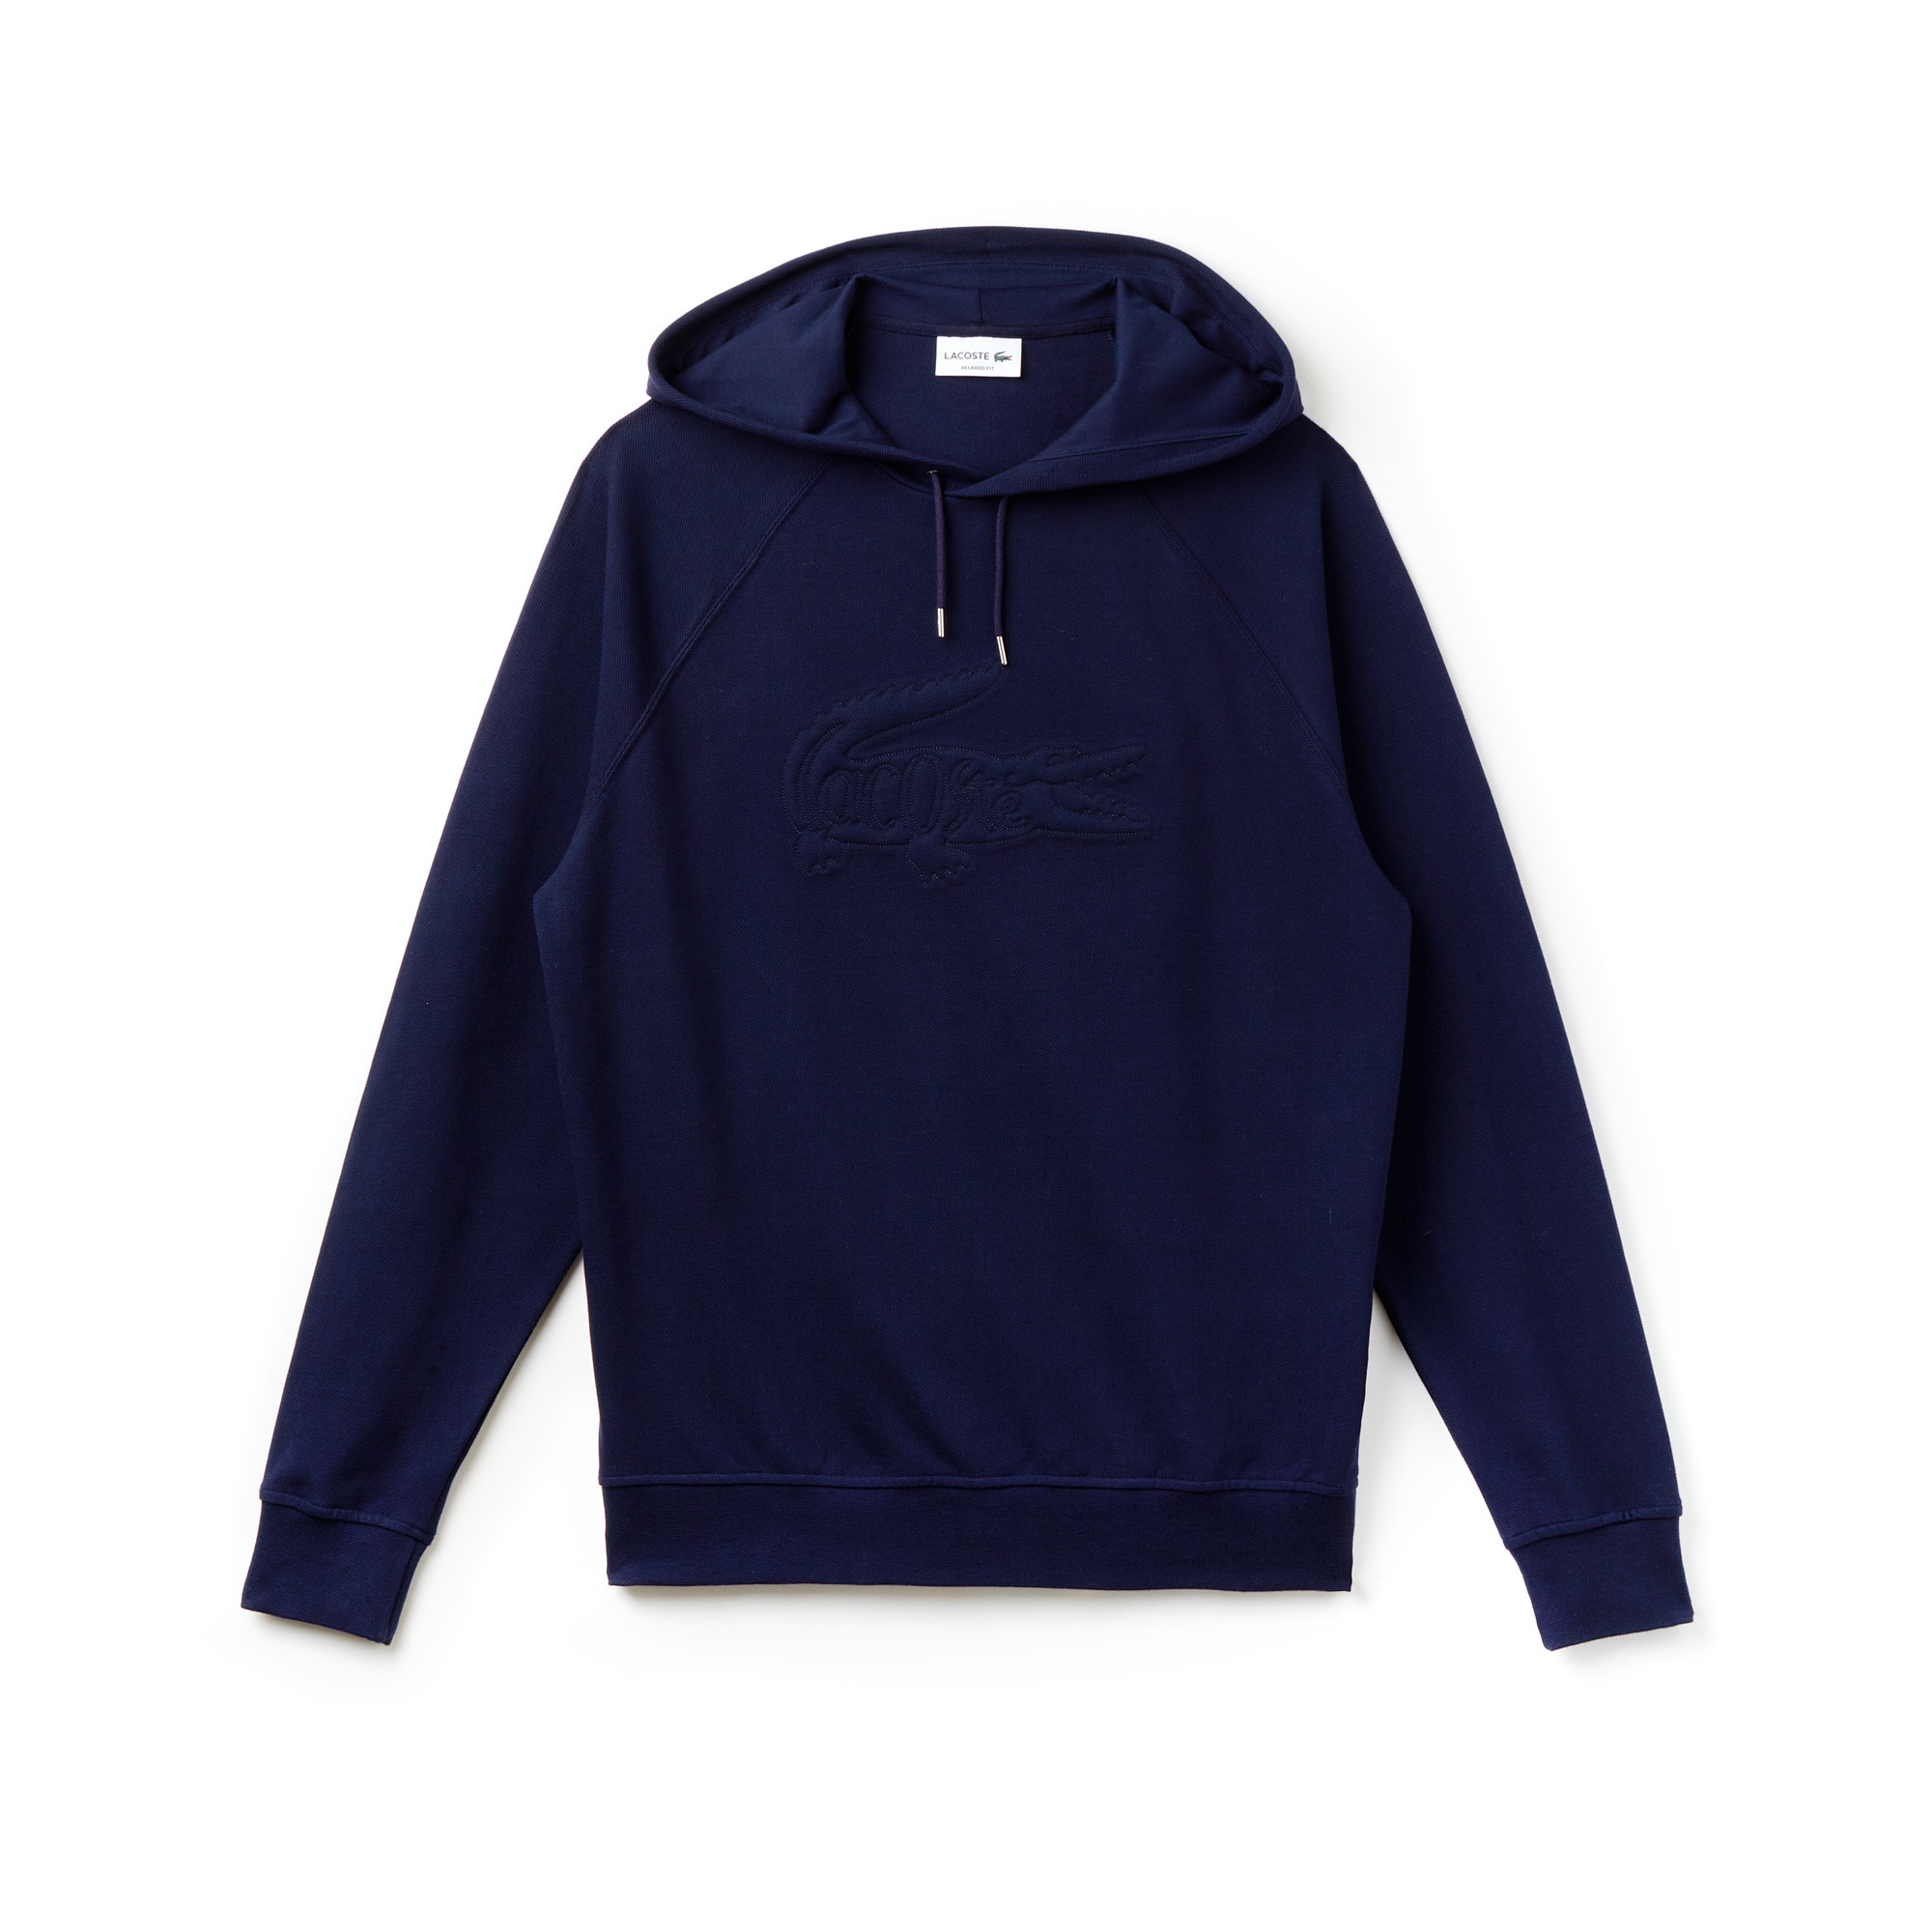 Men's Oversized Embroidered Piqué Sweatshirt